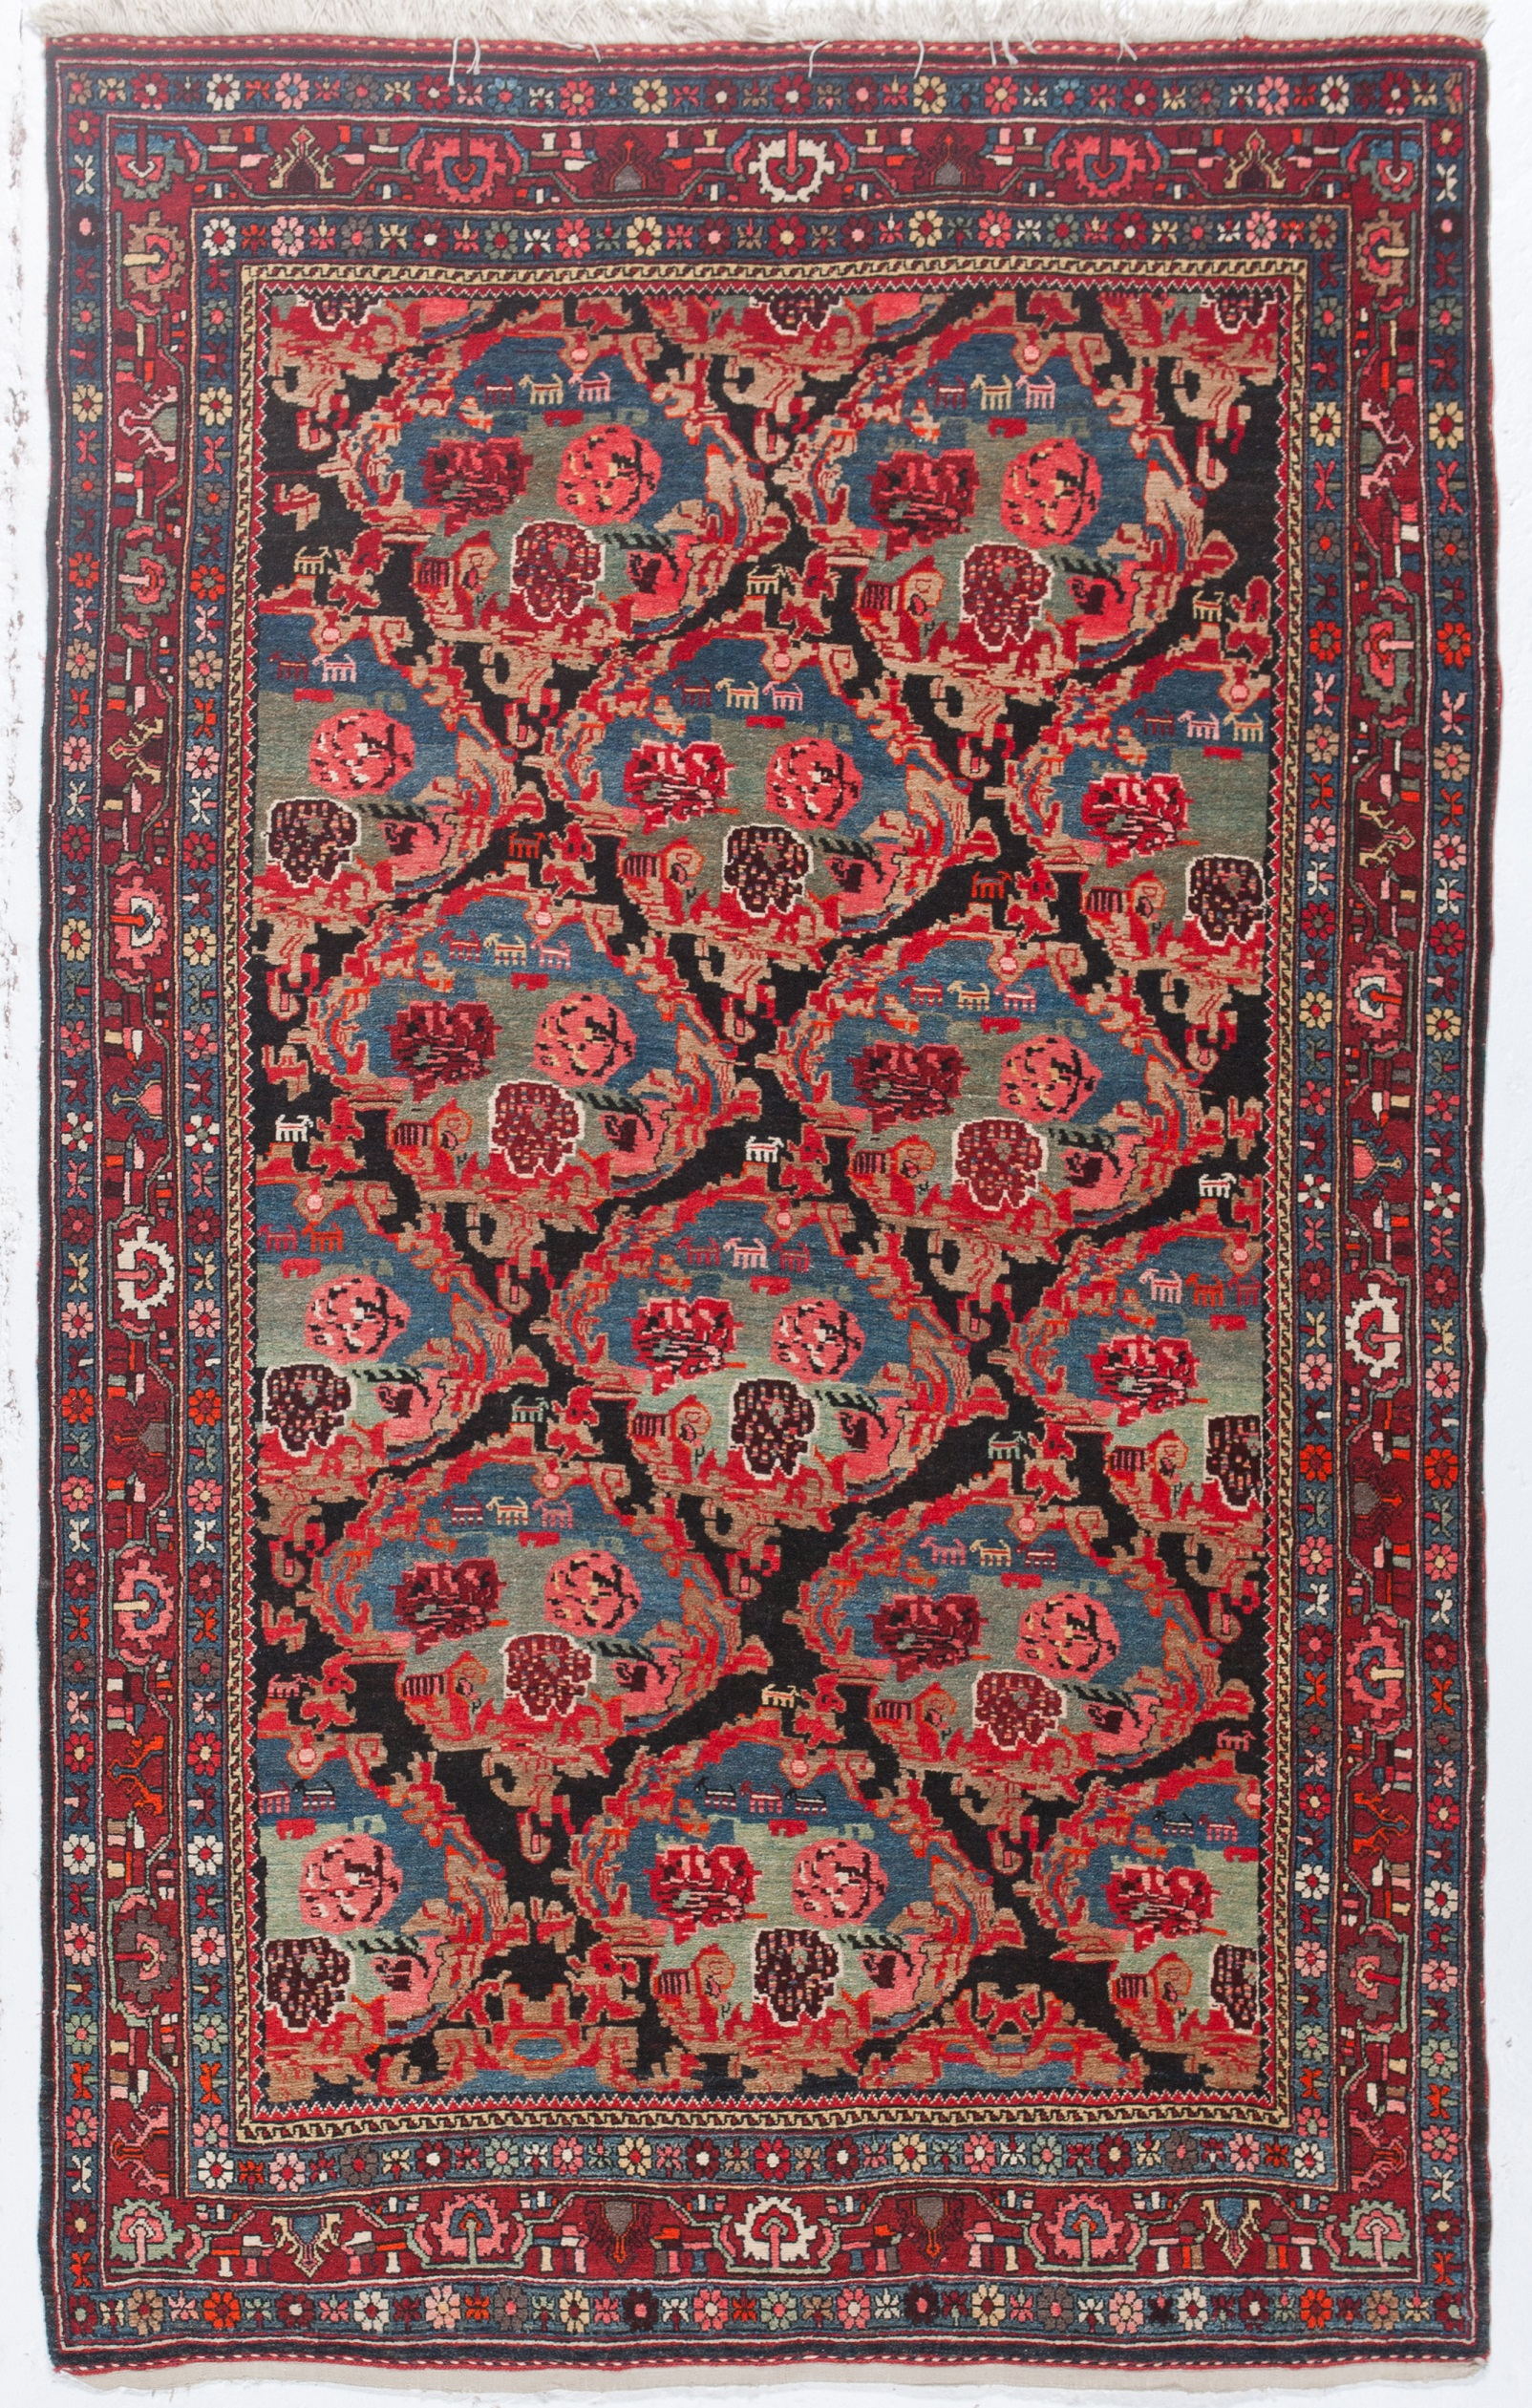 rugs groups by ethnic south although of that a borders many persian as the refers in term english saltingtaeppe pernille apartheid and created photo rug are carpets textiles f to range klemp known western within aesthetics whiteness era africa